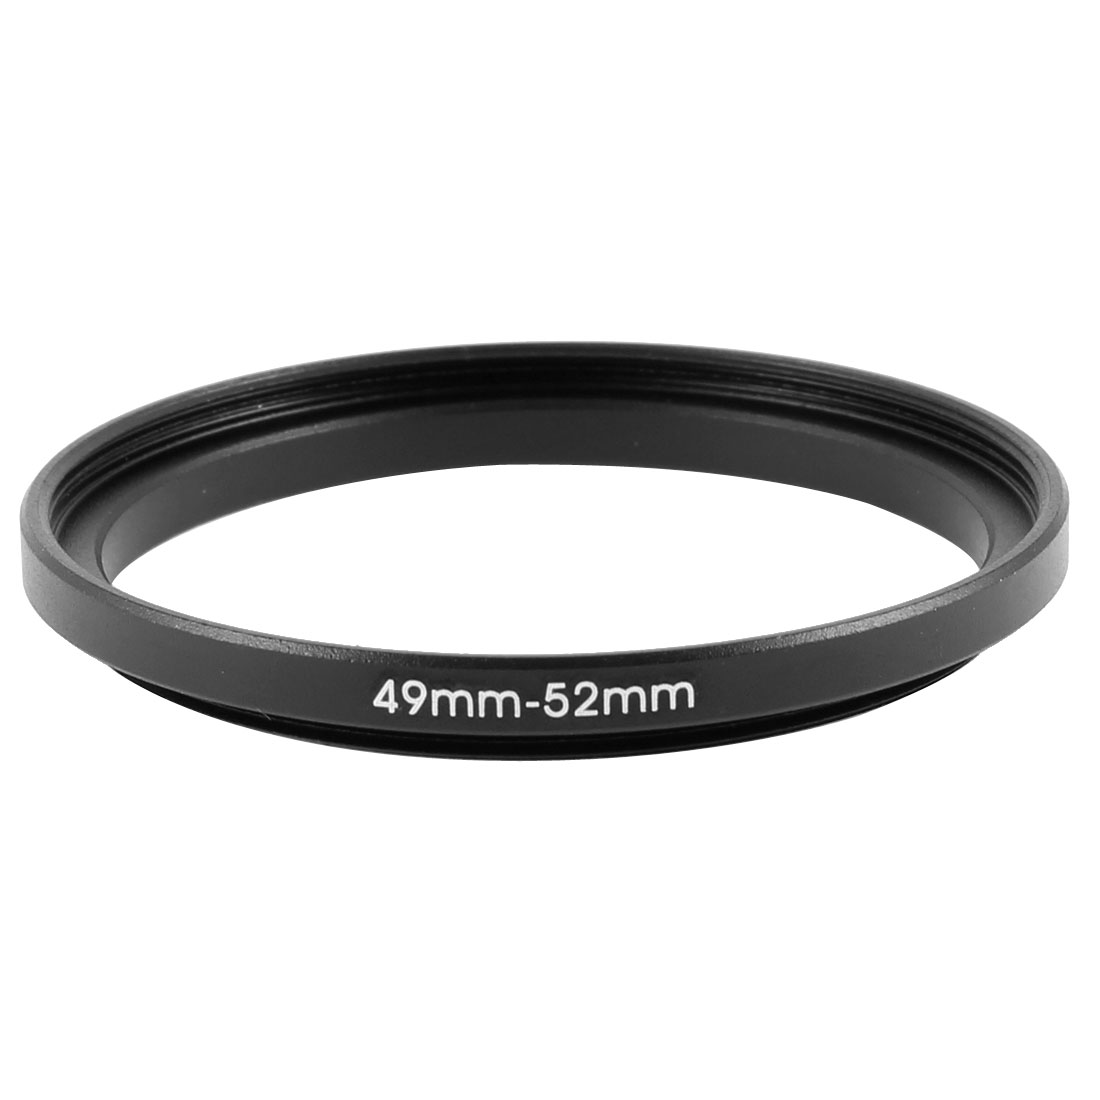 Aluminum Step Up Lens Filter Ring Stepping Adapter 49mm-52mm